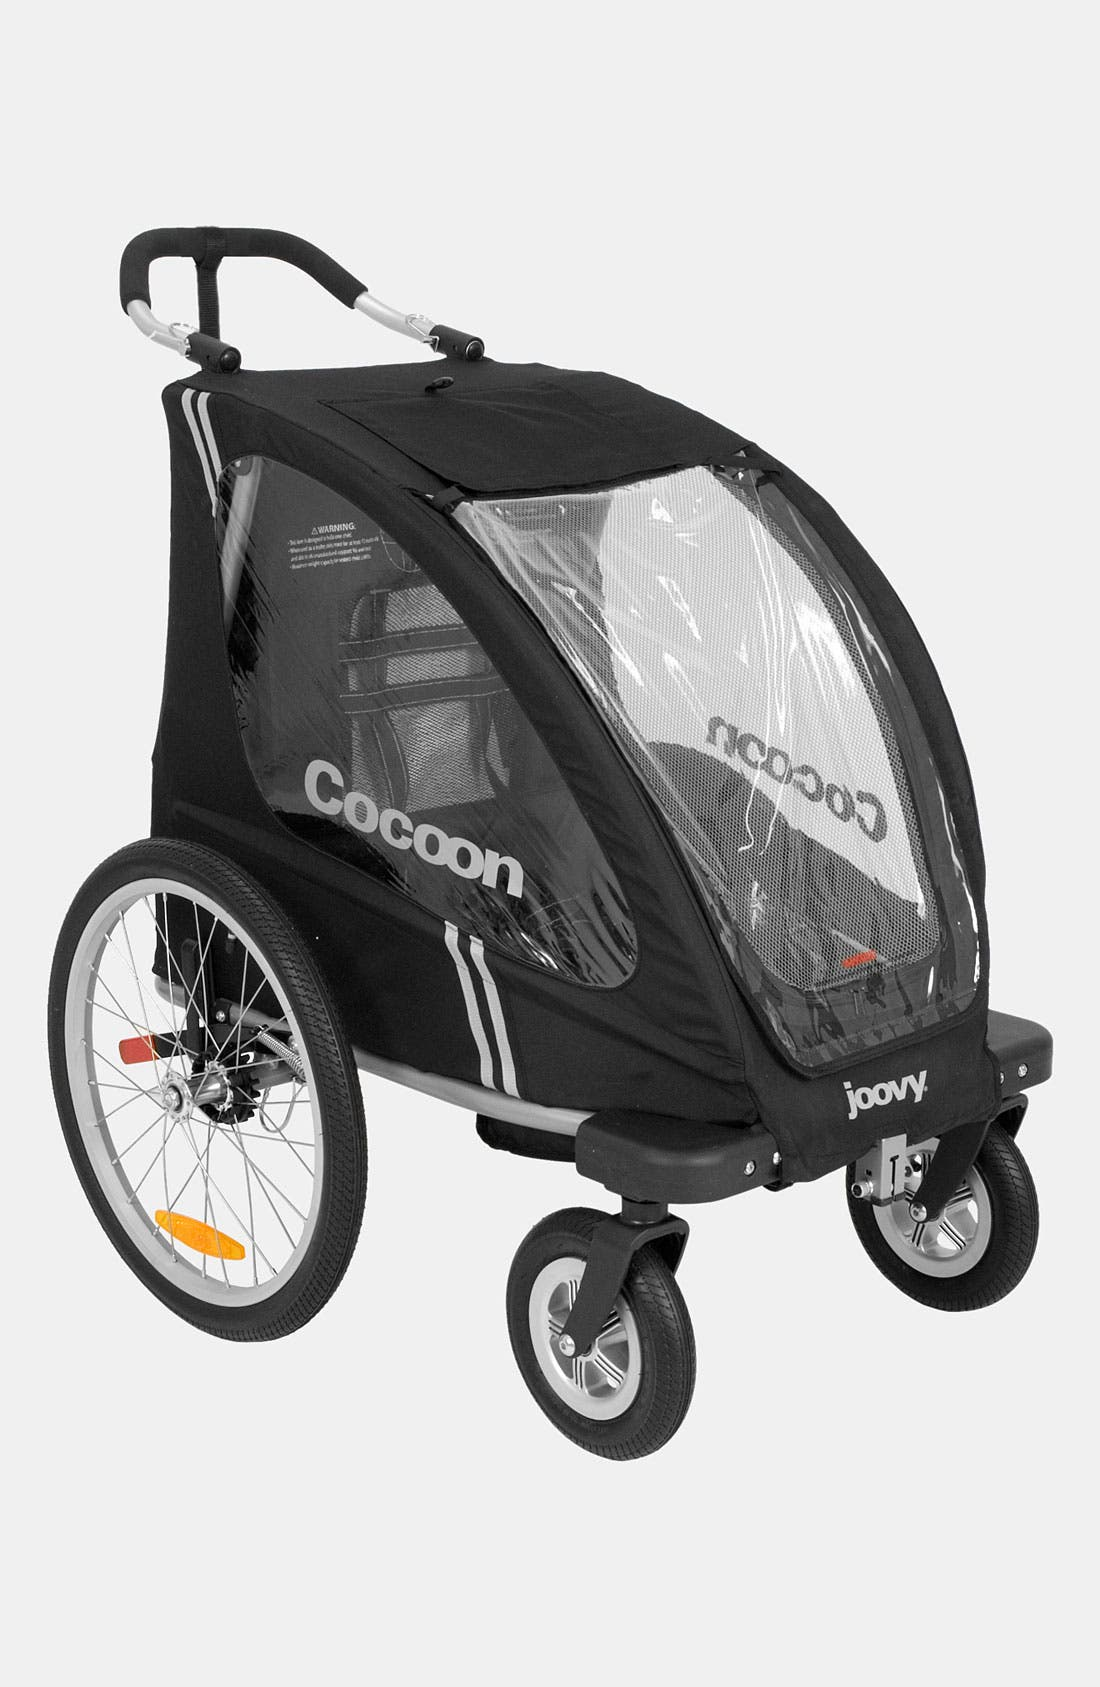 Alternate Image 1 Selected - Joovy 'Cocoon' Single Stroller